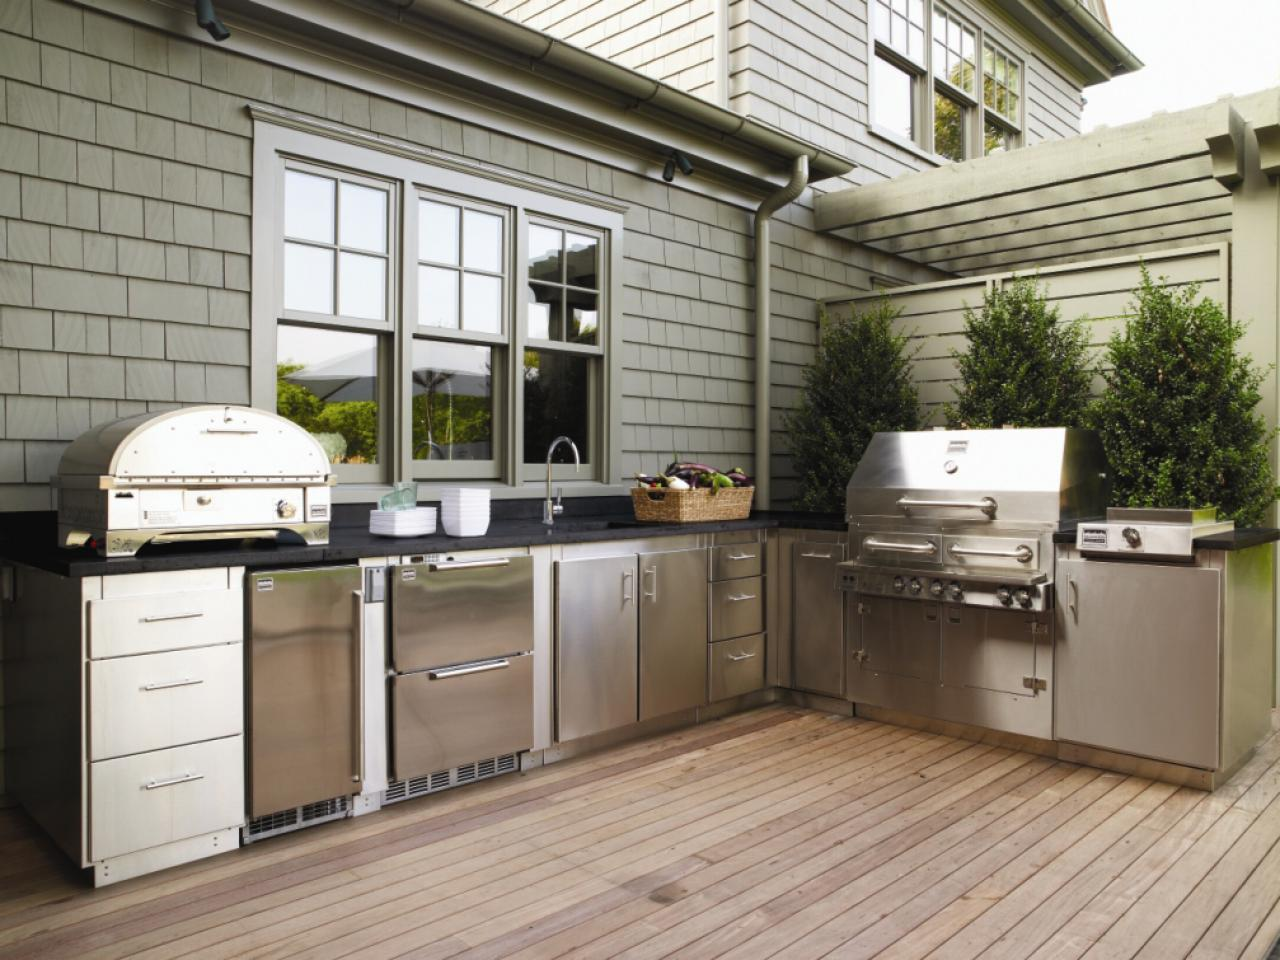 Ideas For Getting Your Grilling Space Ready For Outdoor Entertaining